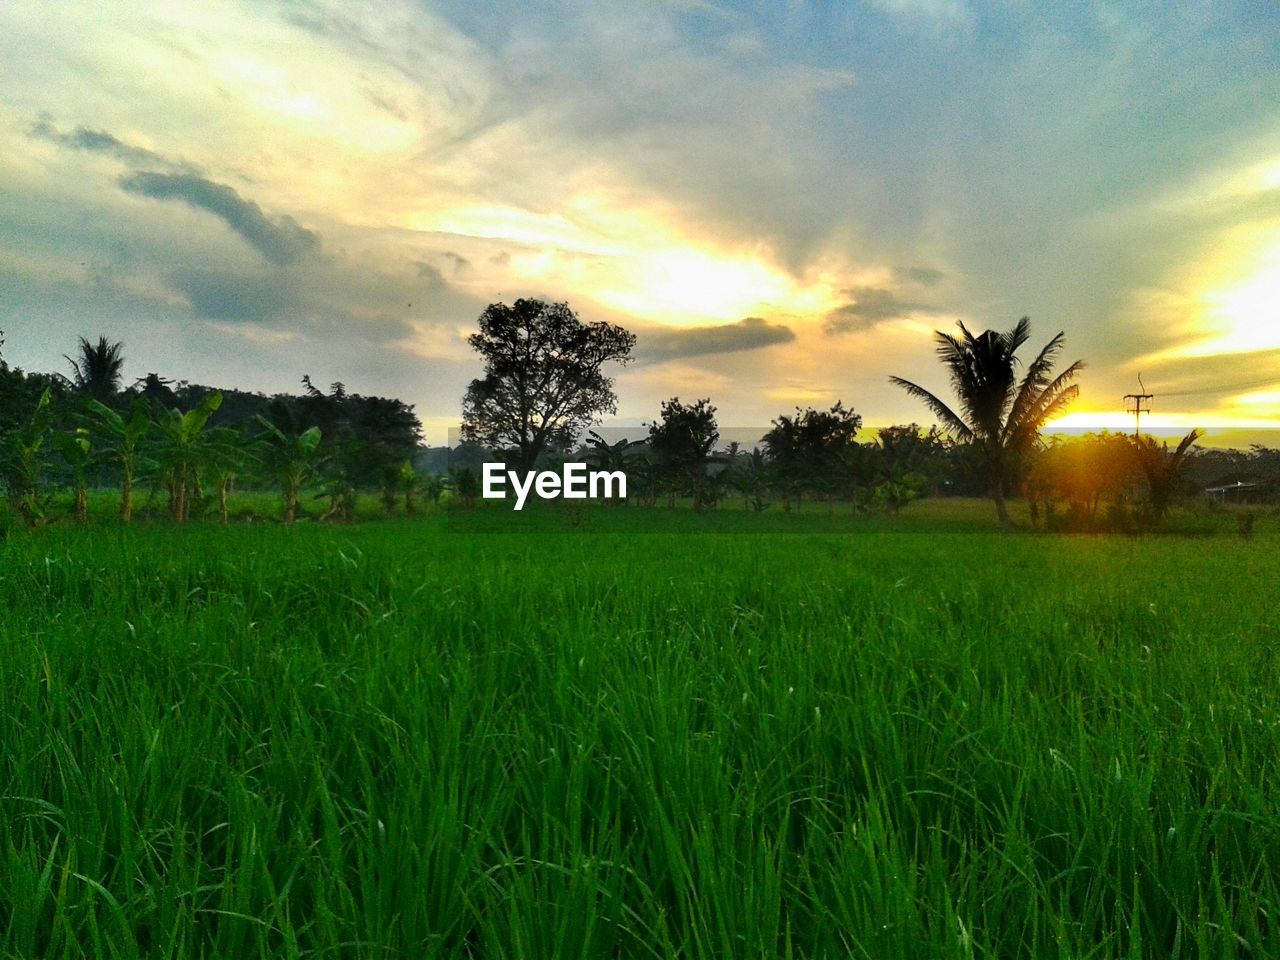 nature, field, landscape, grass, agriculture, sky, sunset, beauty in nature, growth, tranquility, tree, tranquil scene, no people, scenics, rural scene, outdoors, rice paddy, day